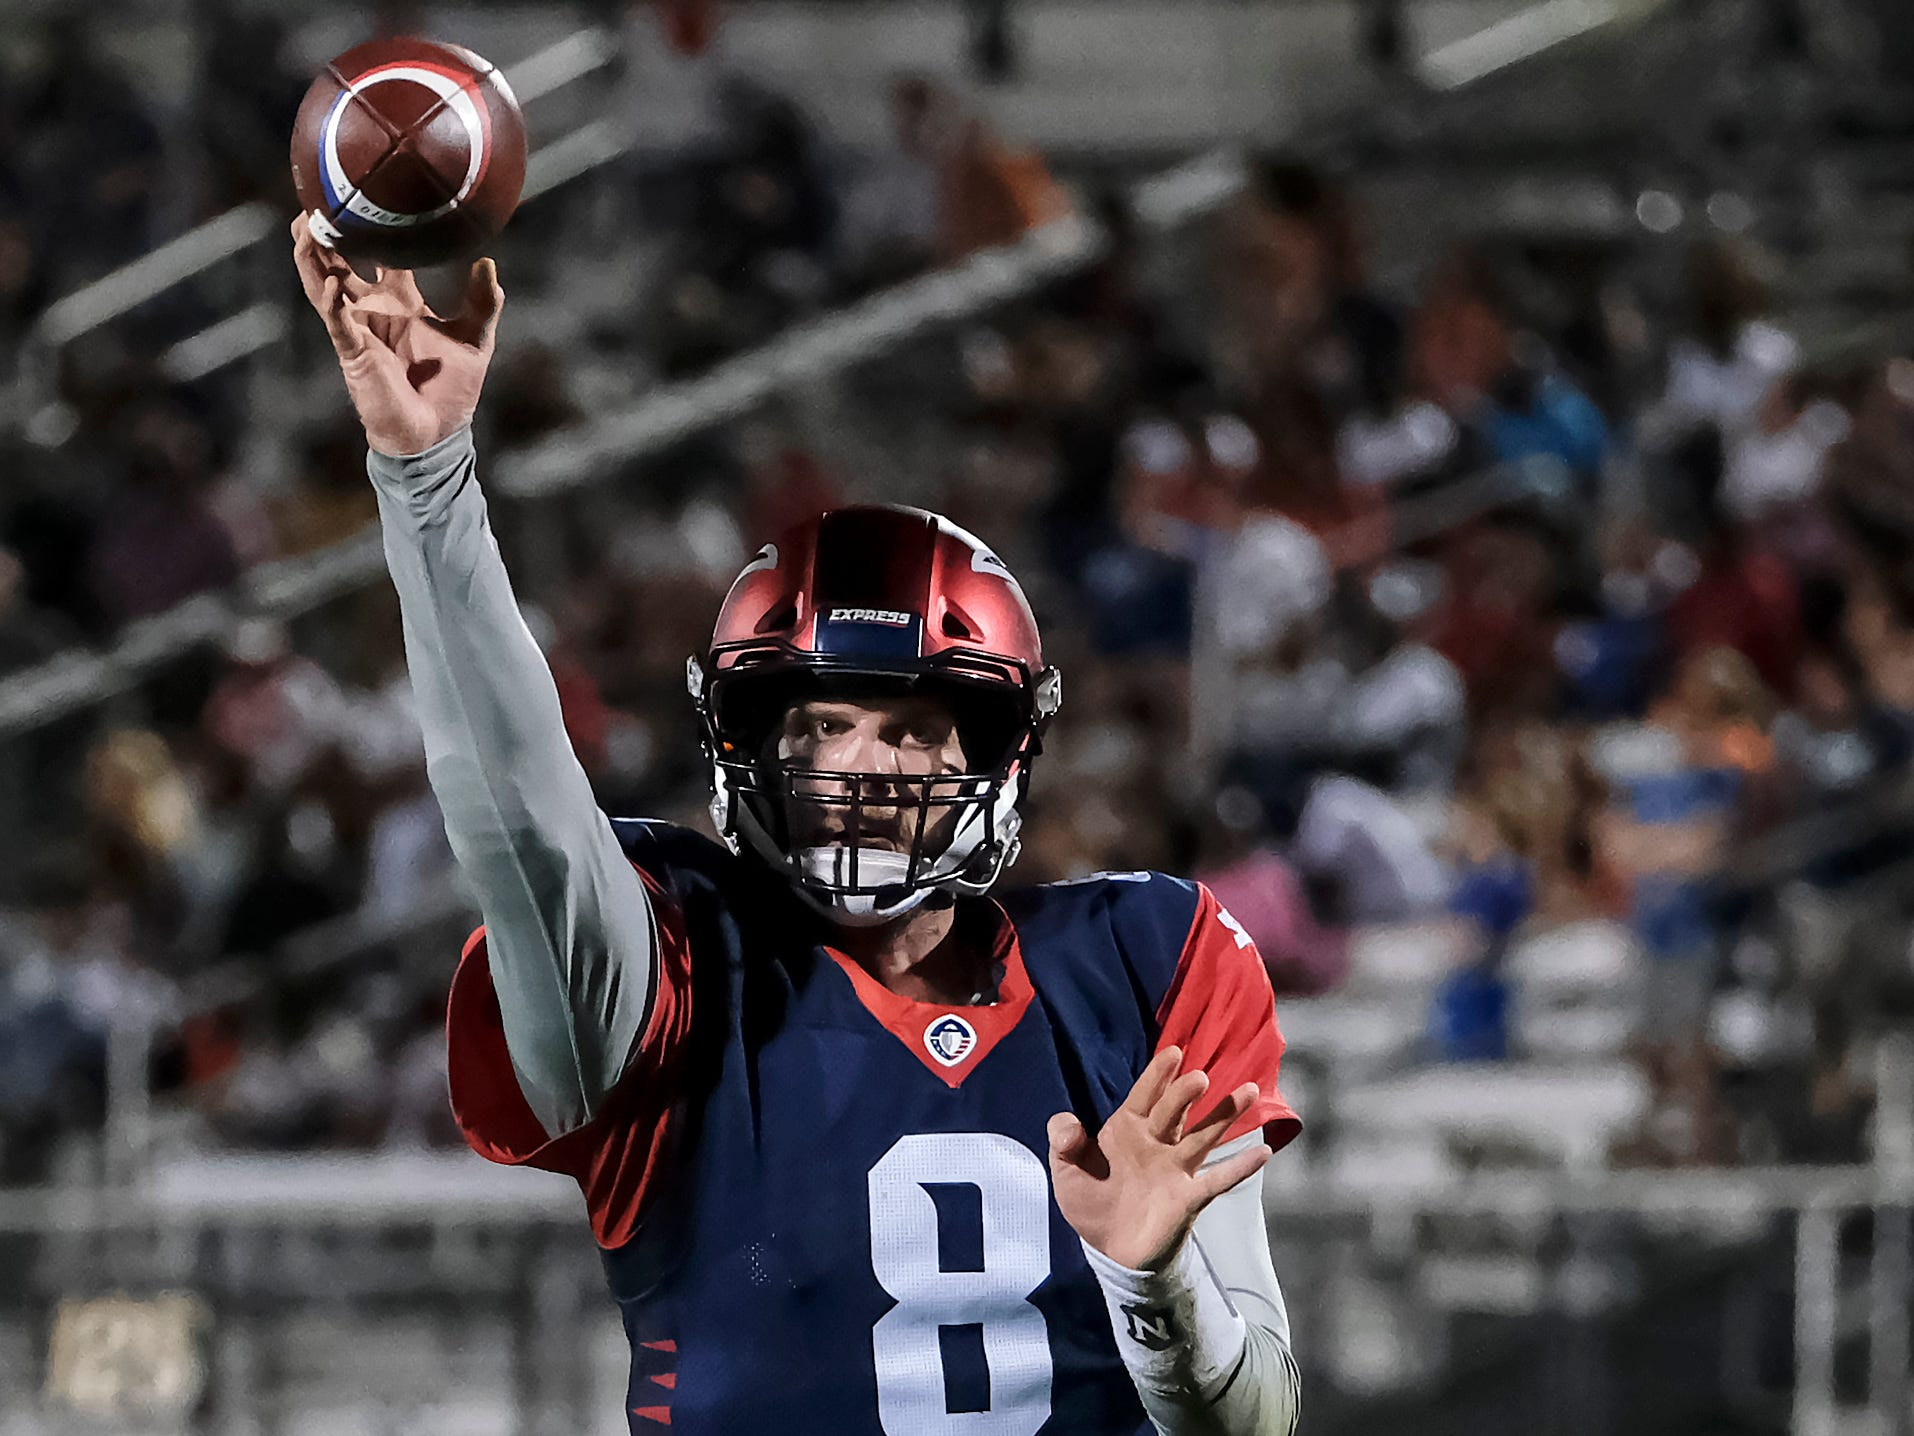 Zach Mettenberger from the Memphis Express launches a pass during their game against the Orlando Apollos at Spectrum Stadium in Orlando, FL on Saturday, February 23, 2019. Orlando won the game 21-17.